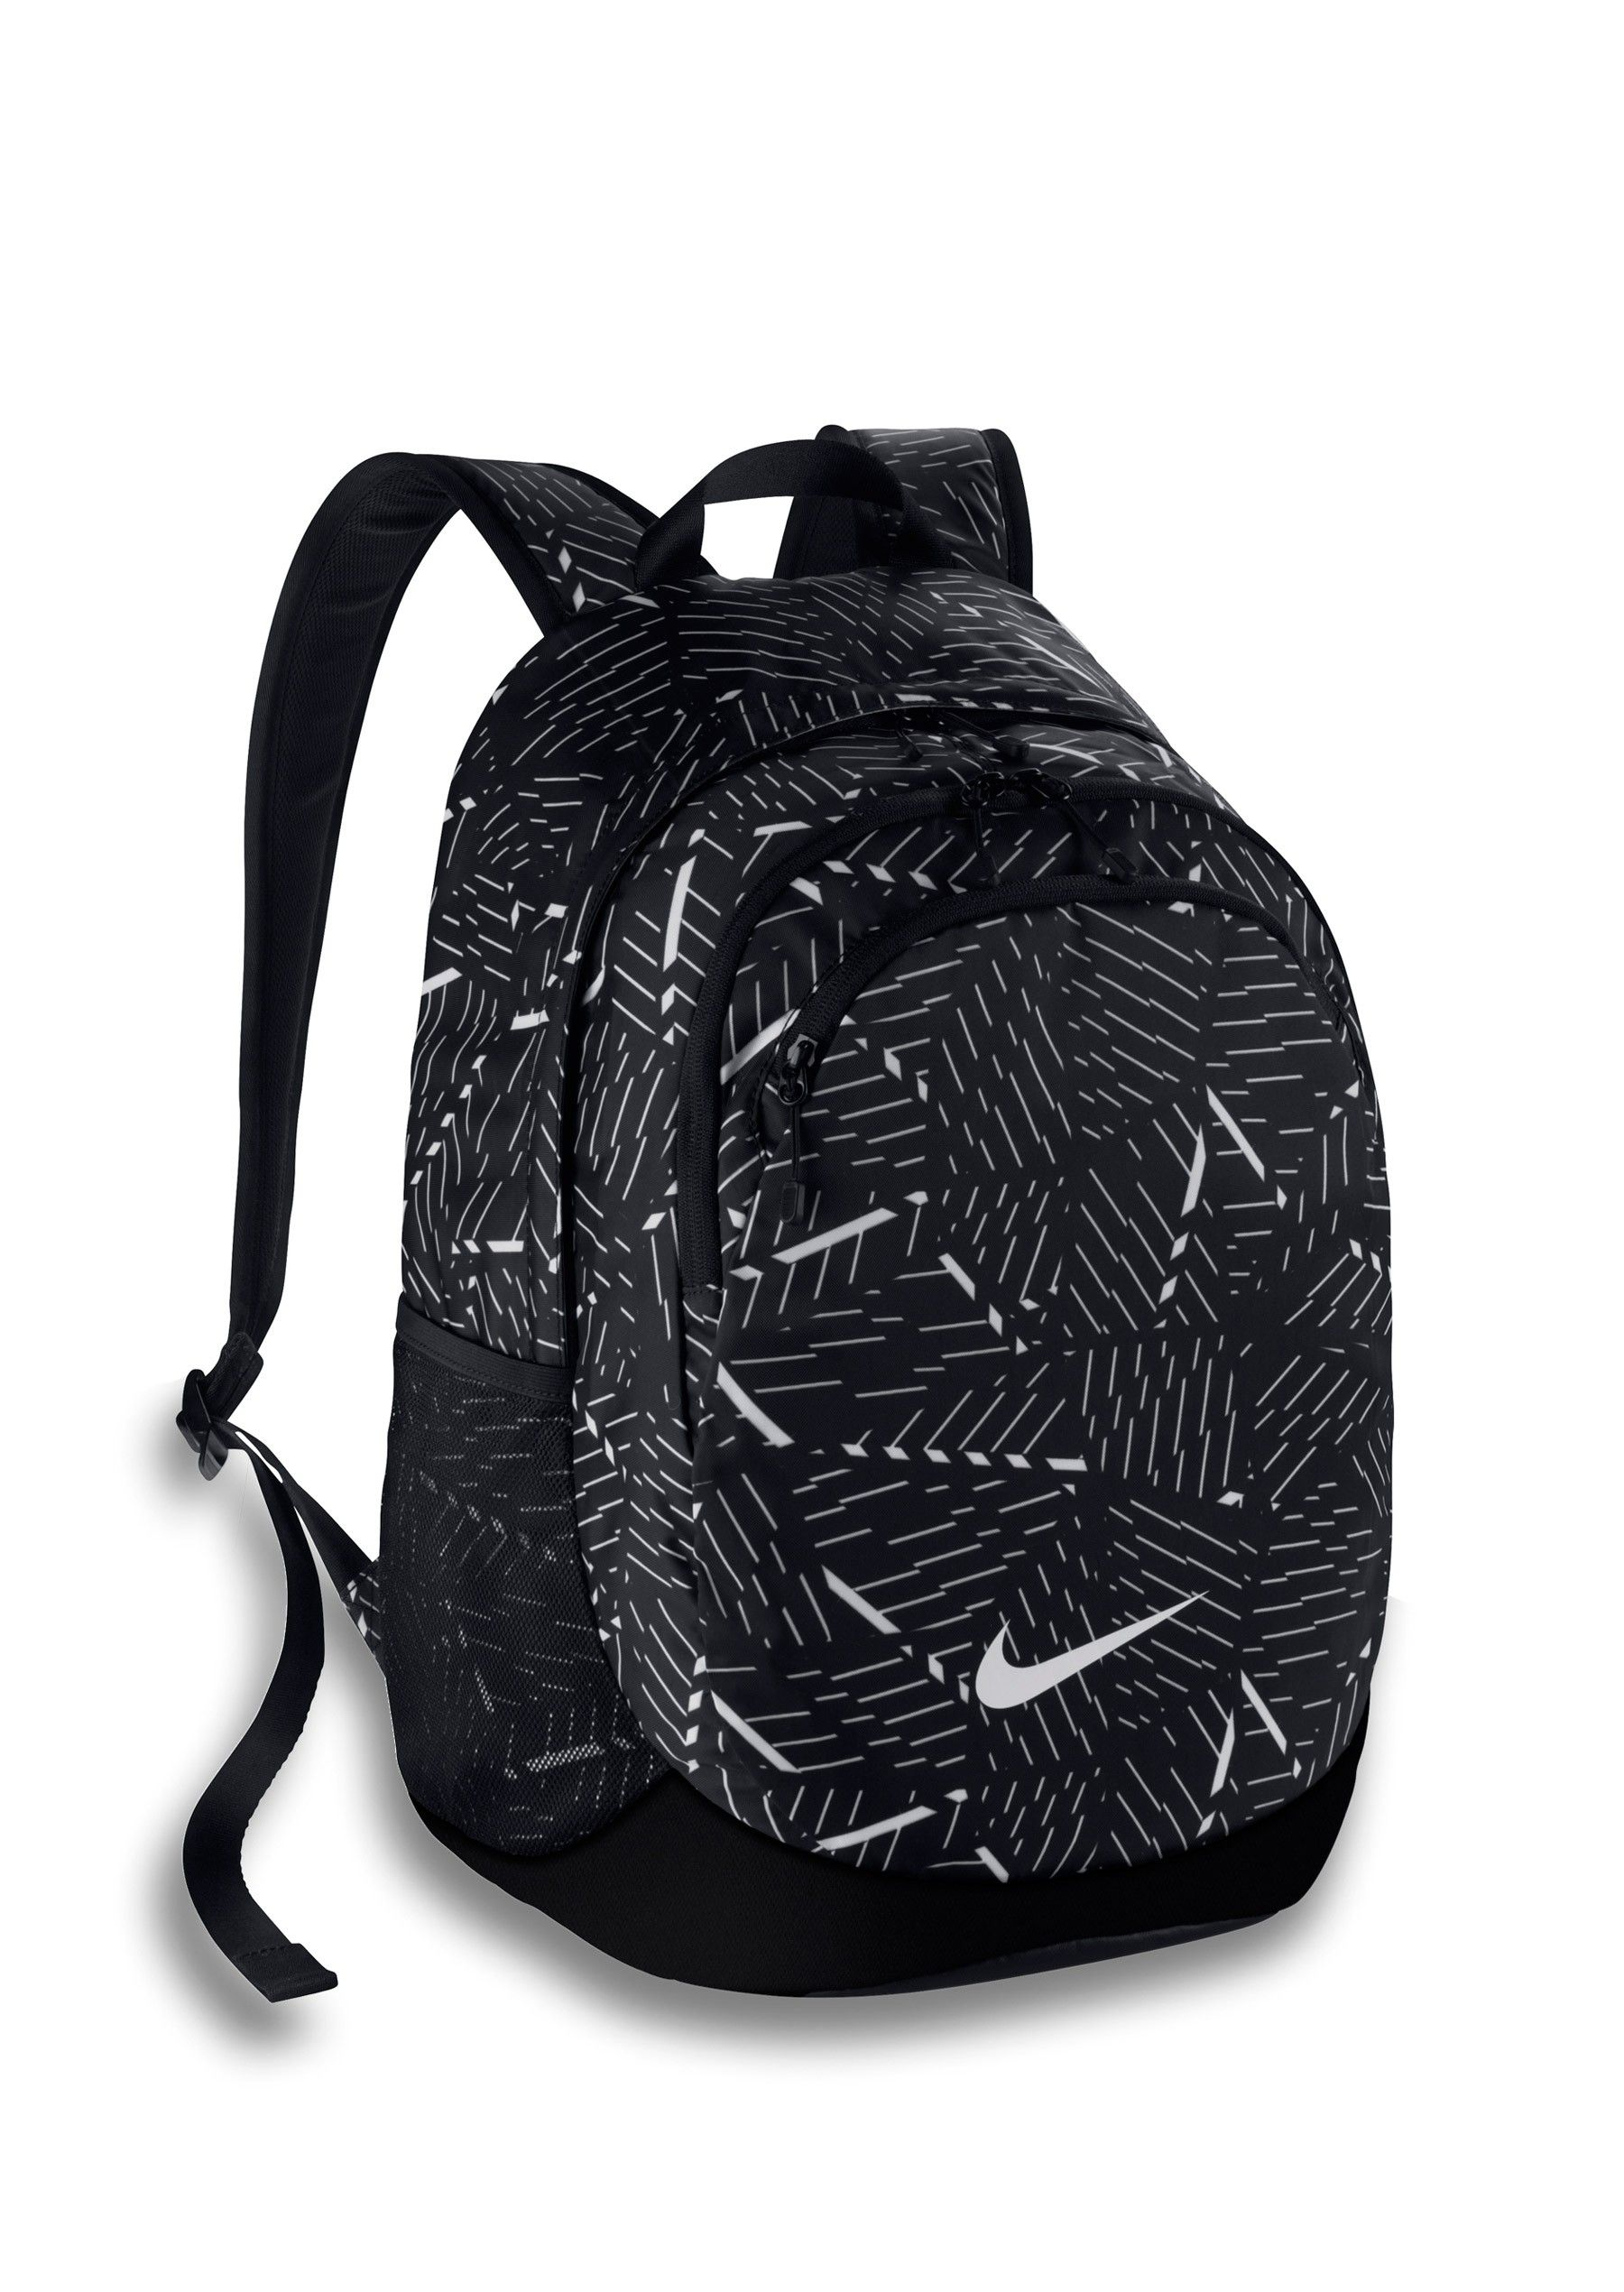 ec477fc3c NIKE DEPARTURE III BACKPACK 2 Sports Golf Gym Hiking BLACK Navy ADULT  GA0275 | eBay | bag✿. | Nike school backpacks, Nike sport backpack y Nike  bags